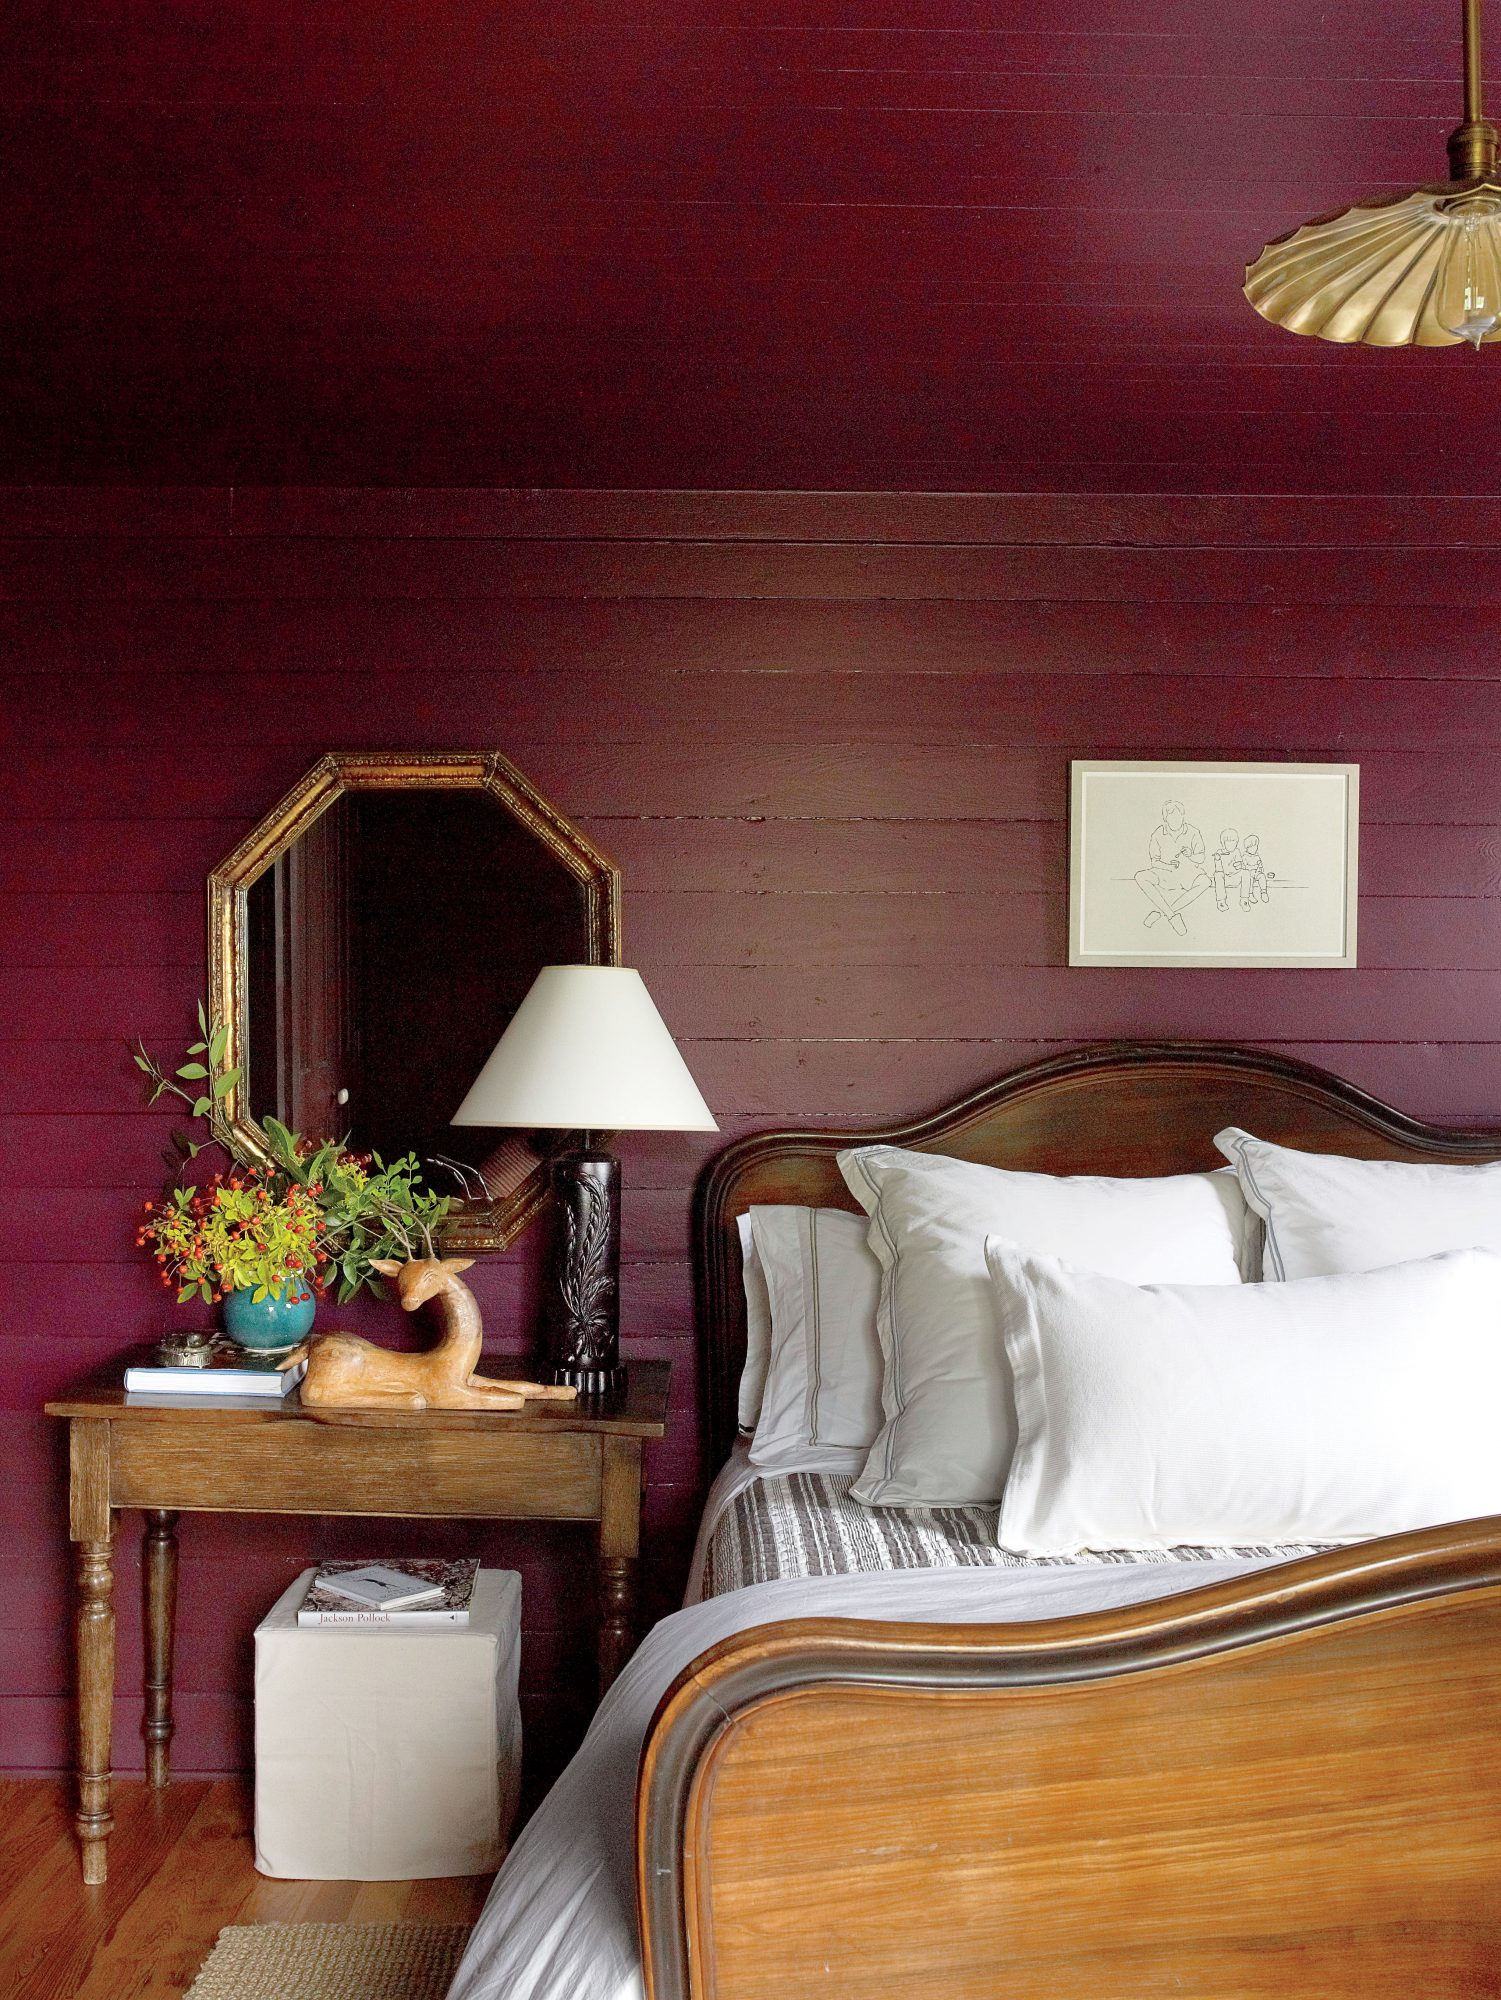 The Best Warm Paint Colors for a Cozy Home Raised Bed Garden Design Martha Stewart on martha stewart landscaping, martha stewart family, martha stewart home, martha stewart succulents, martha stewart raised vegetable garden, martha stewart greenhouse, martha stewart gazebo, martha stewart books,